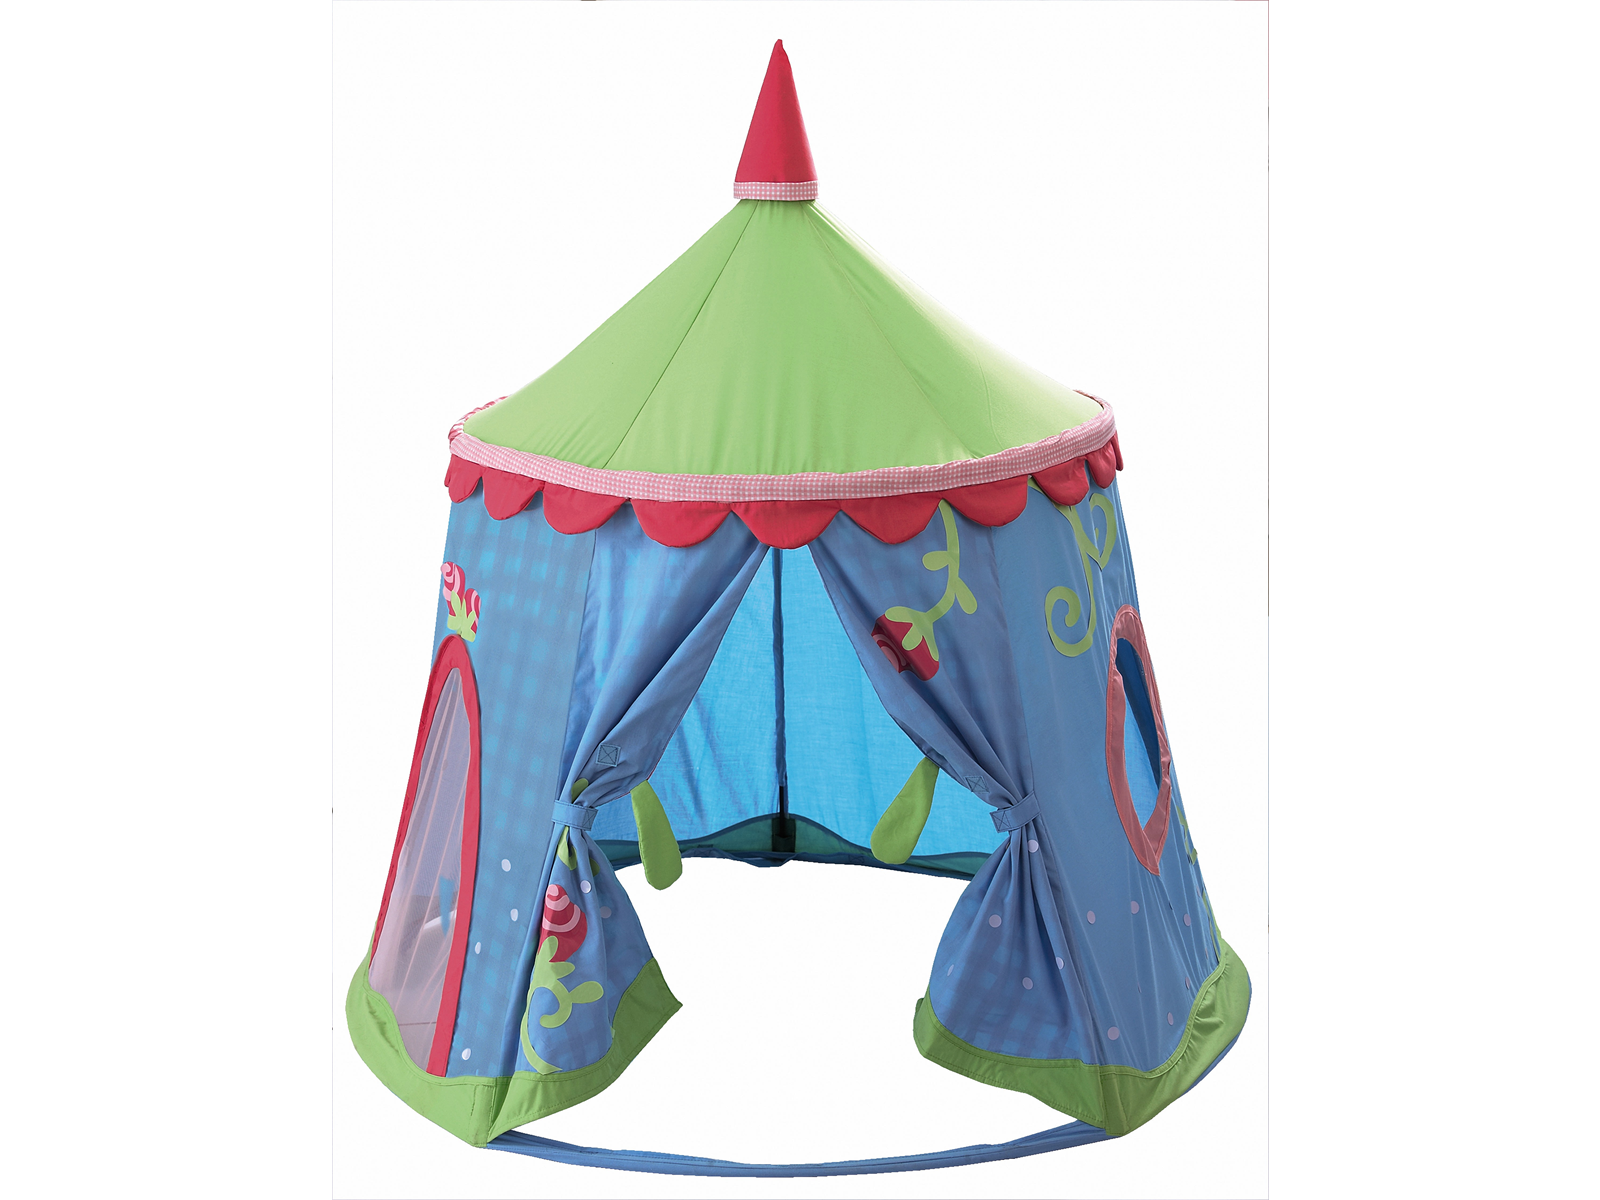 Haba Caro Lini Play Tent - Playhouse of Dreams  - 6